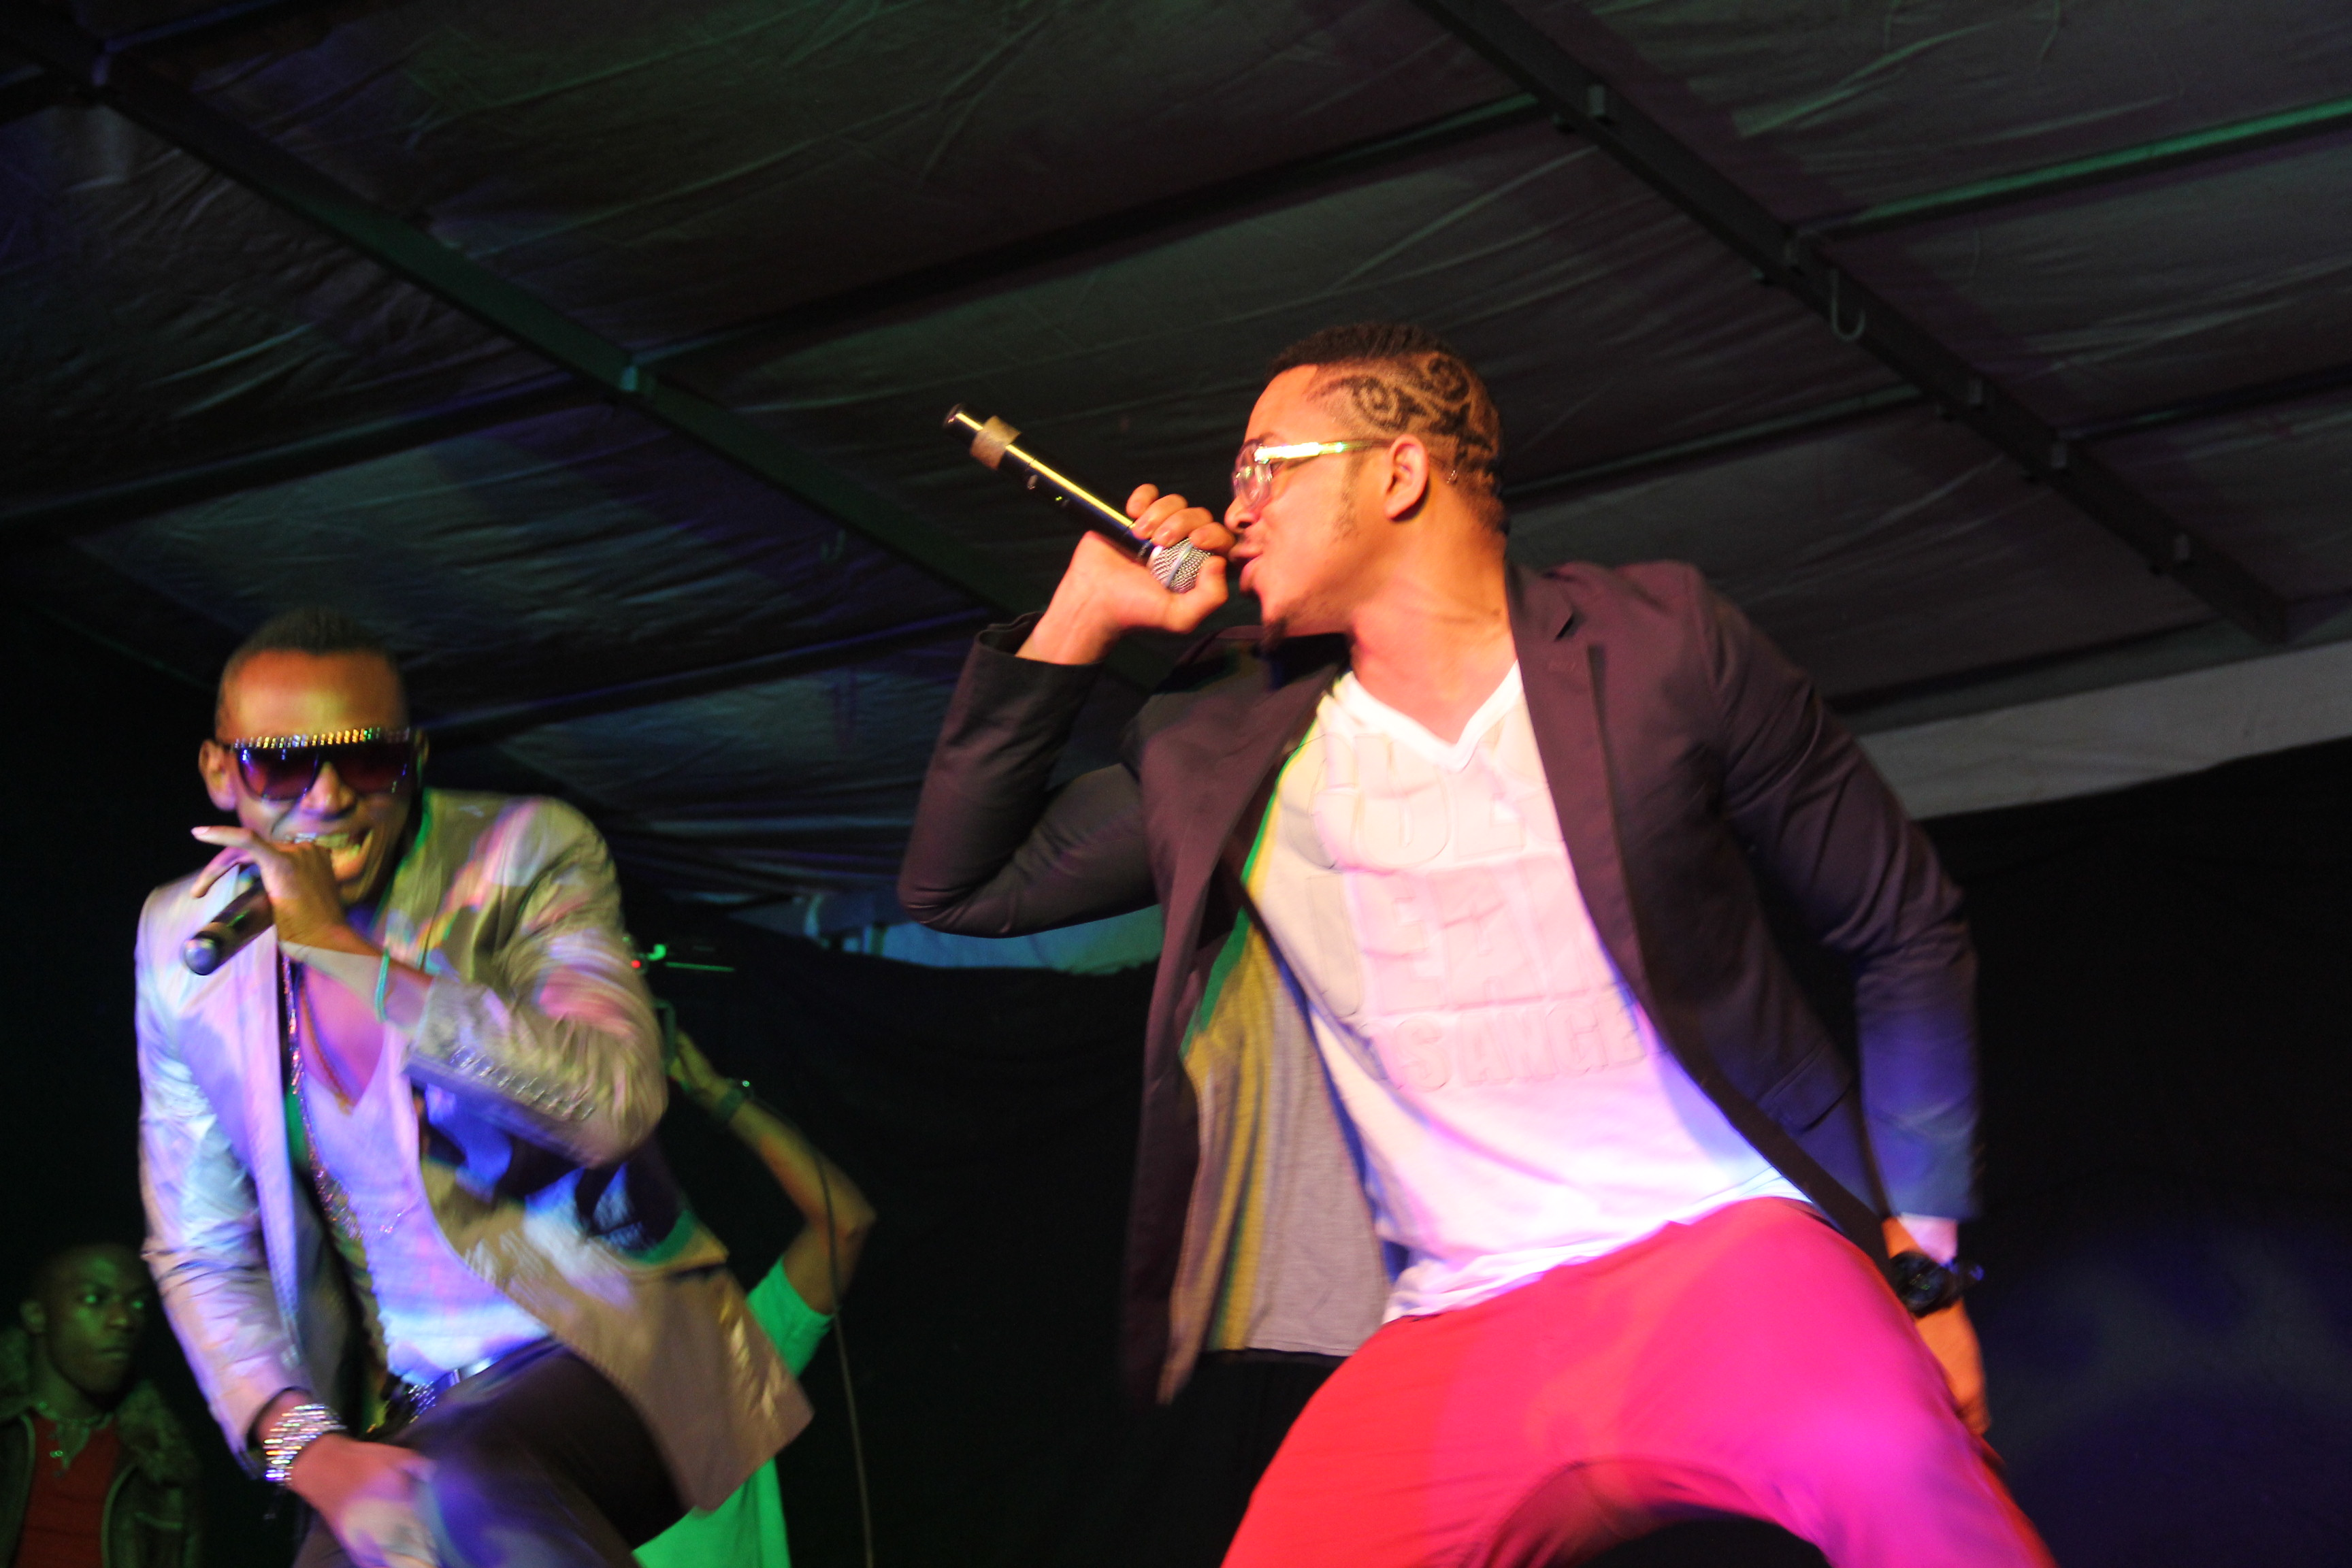 Bracket performing on stage